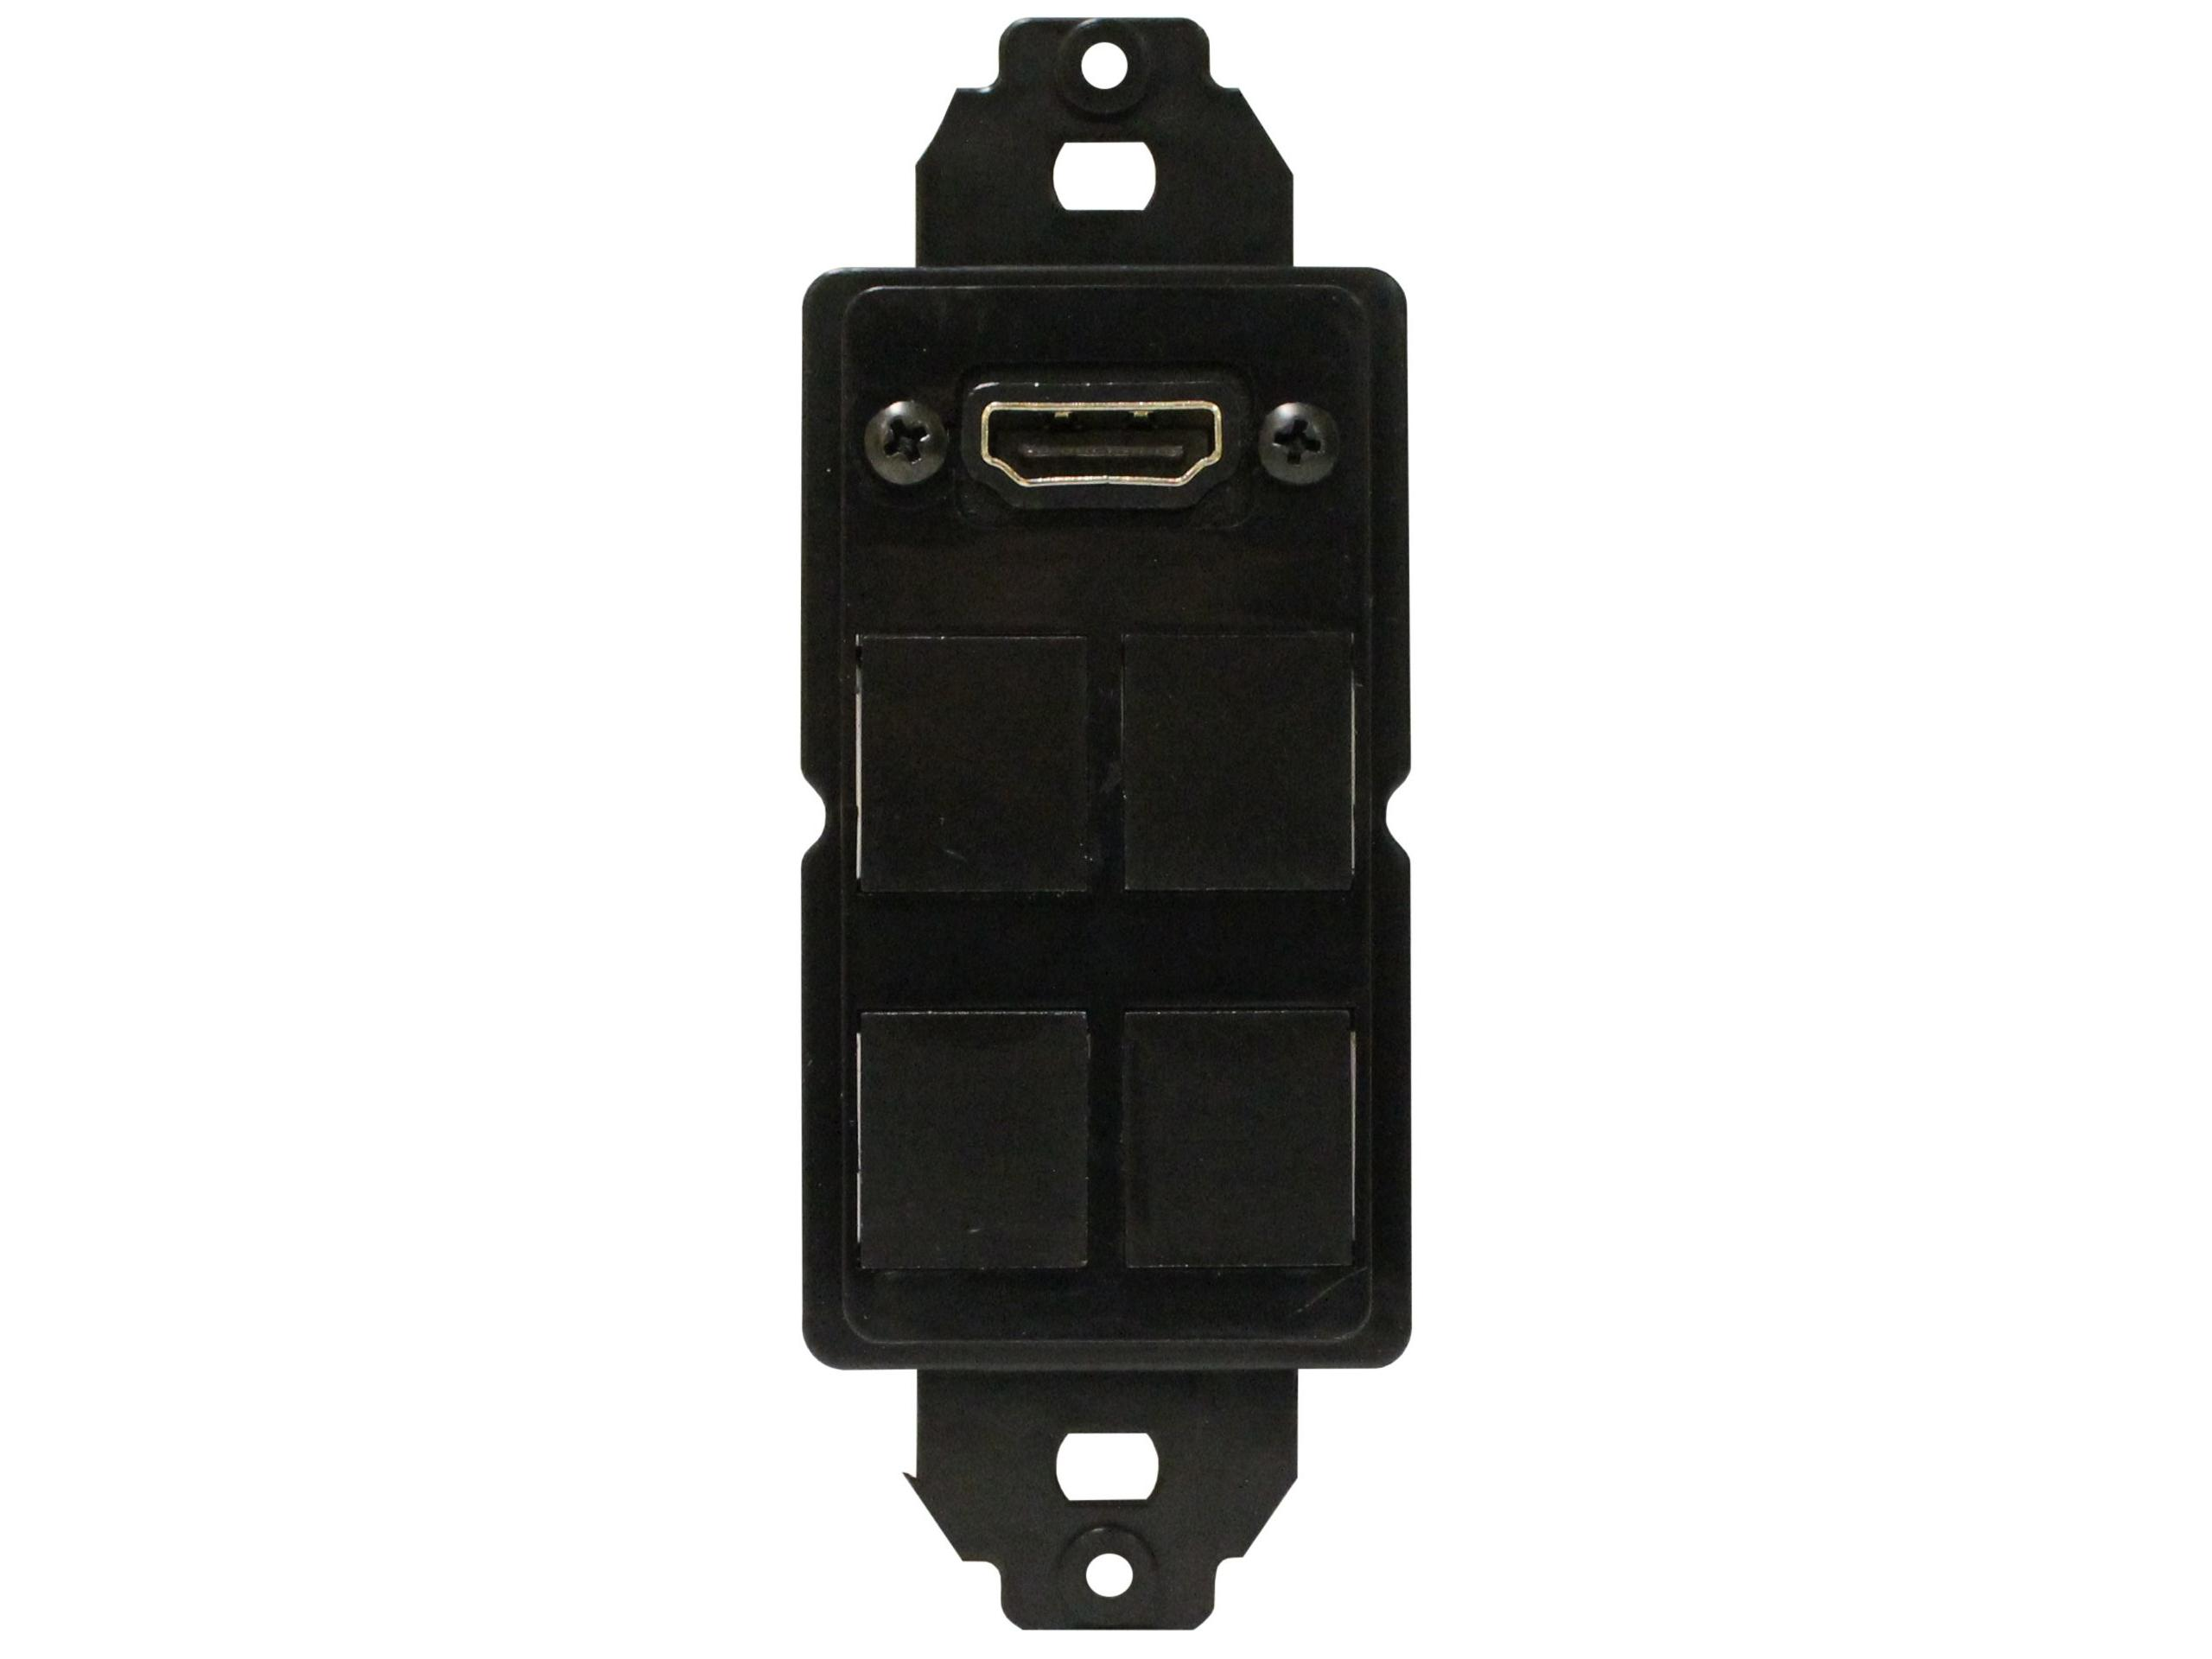 CNK-IP-217 Panel Mount Hdmi W 4-Port Snap In Plate by Altinex